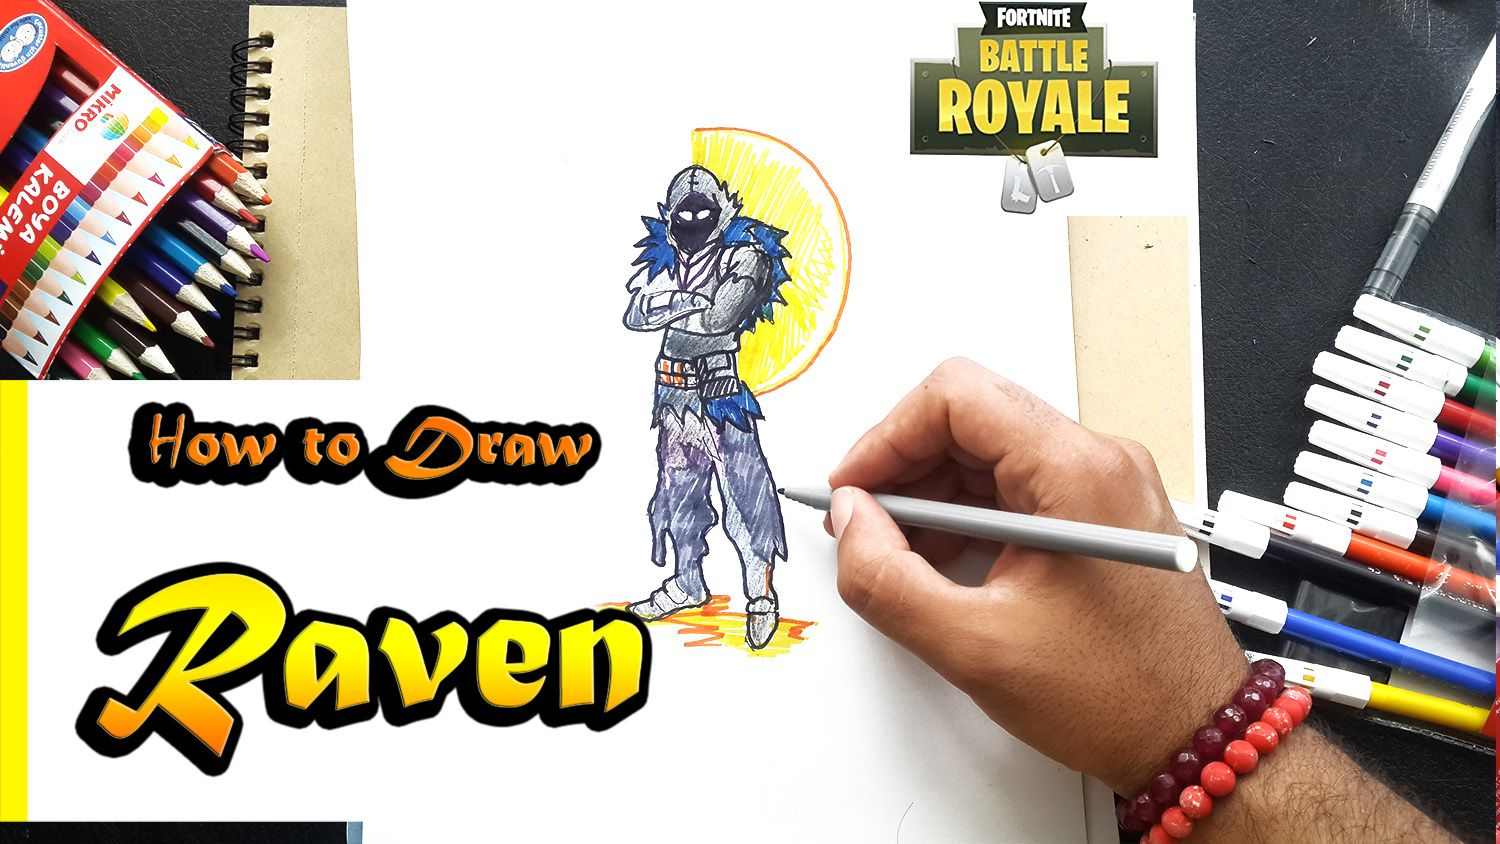 How To Draw Raven From Fortnite Battle Royal Art Tutorial Step By Step Hi Everyone In Today S Art Tutorial I Ll Be Show Royal Art Art Tutorials Drawings